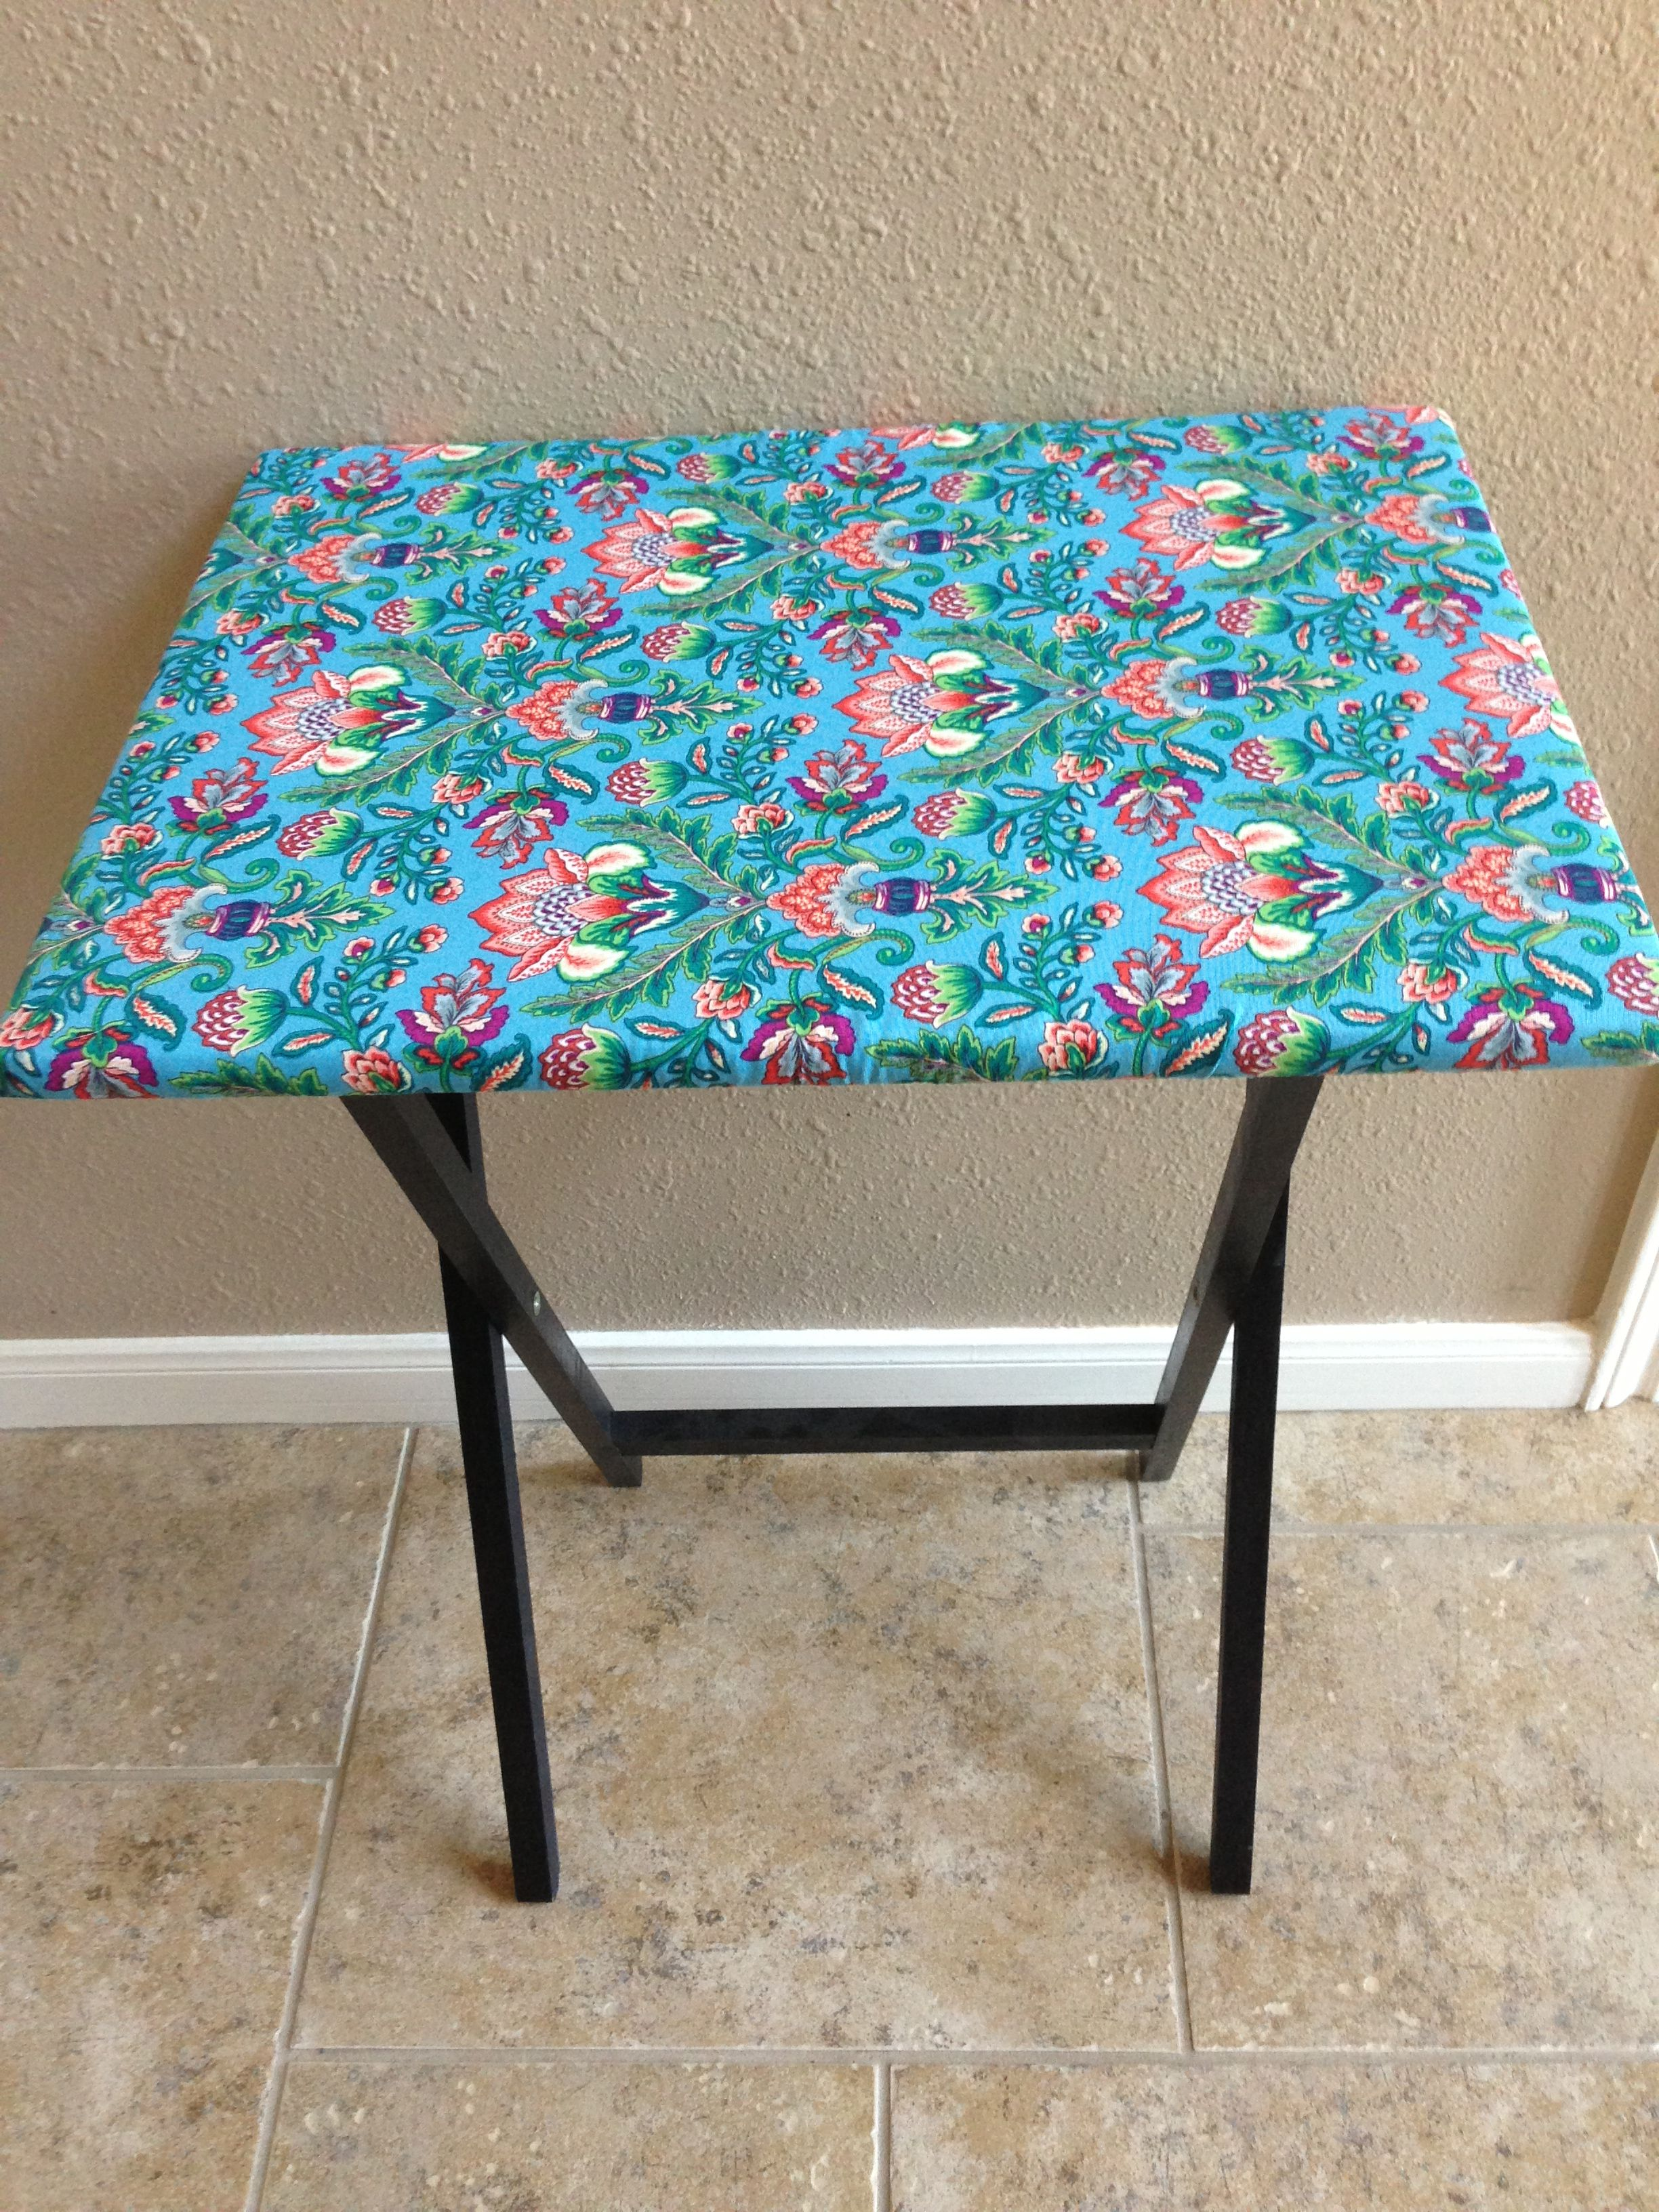 diy ironing board cover a tv tray with a pre made ironing board cover fold and staple then cut. Black Bedroom Furniture Sets. Home Design Ideas